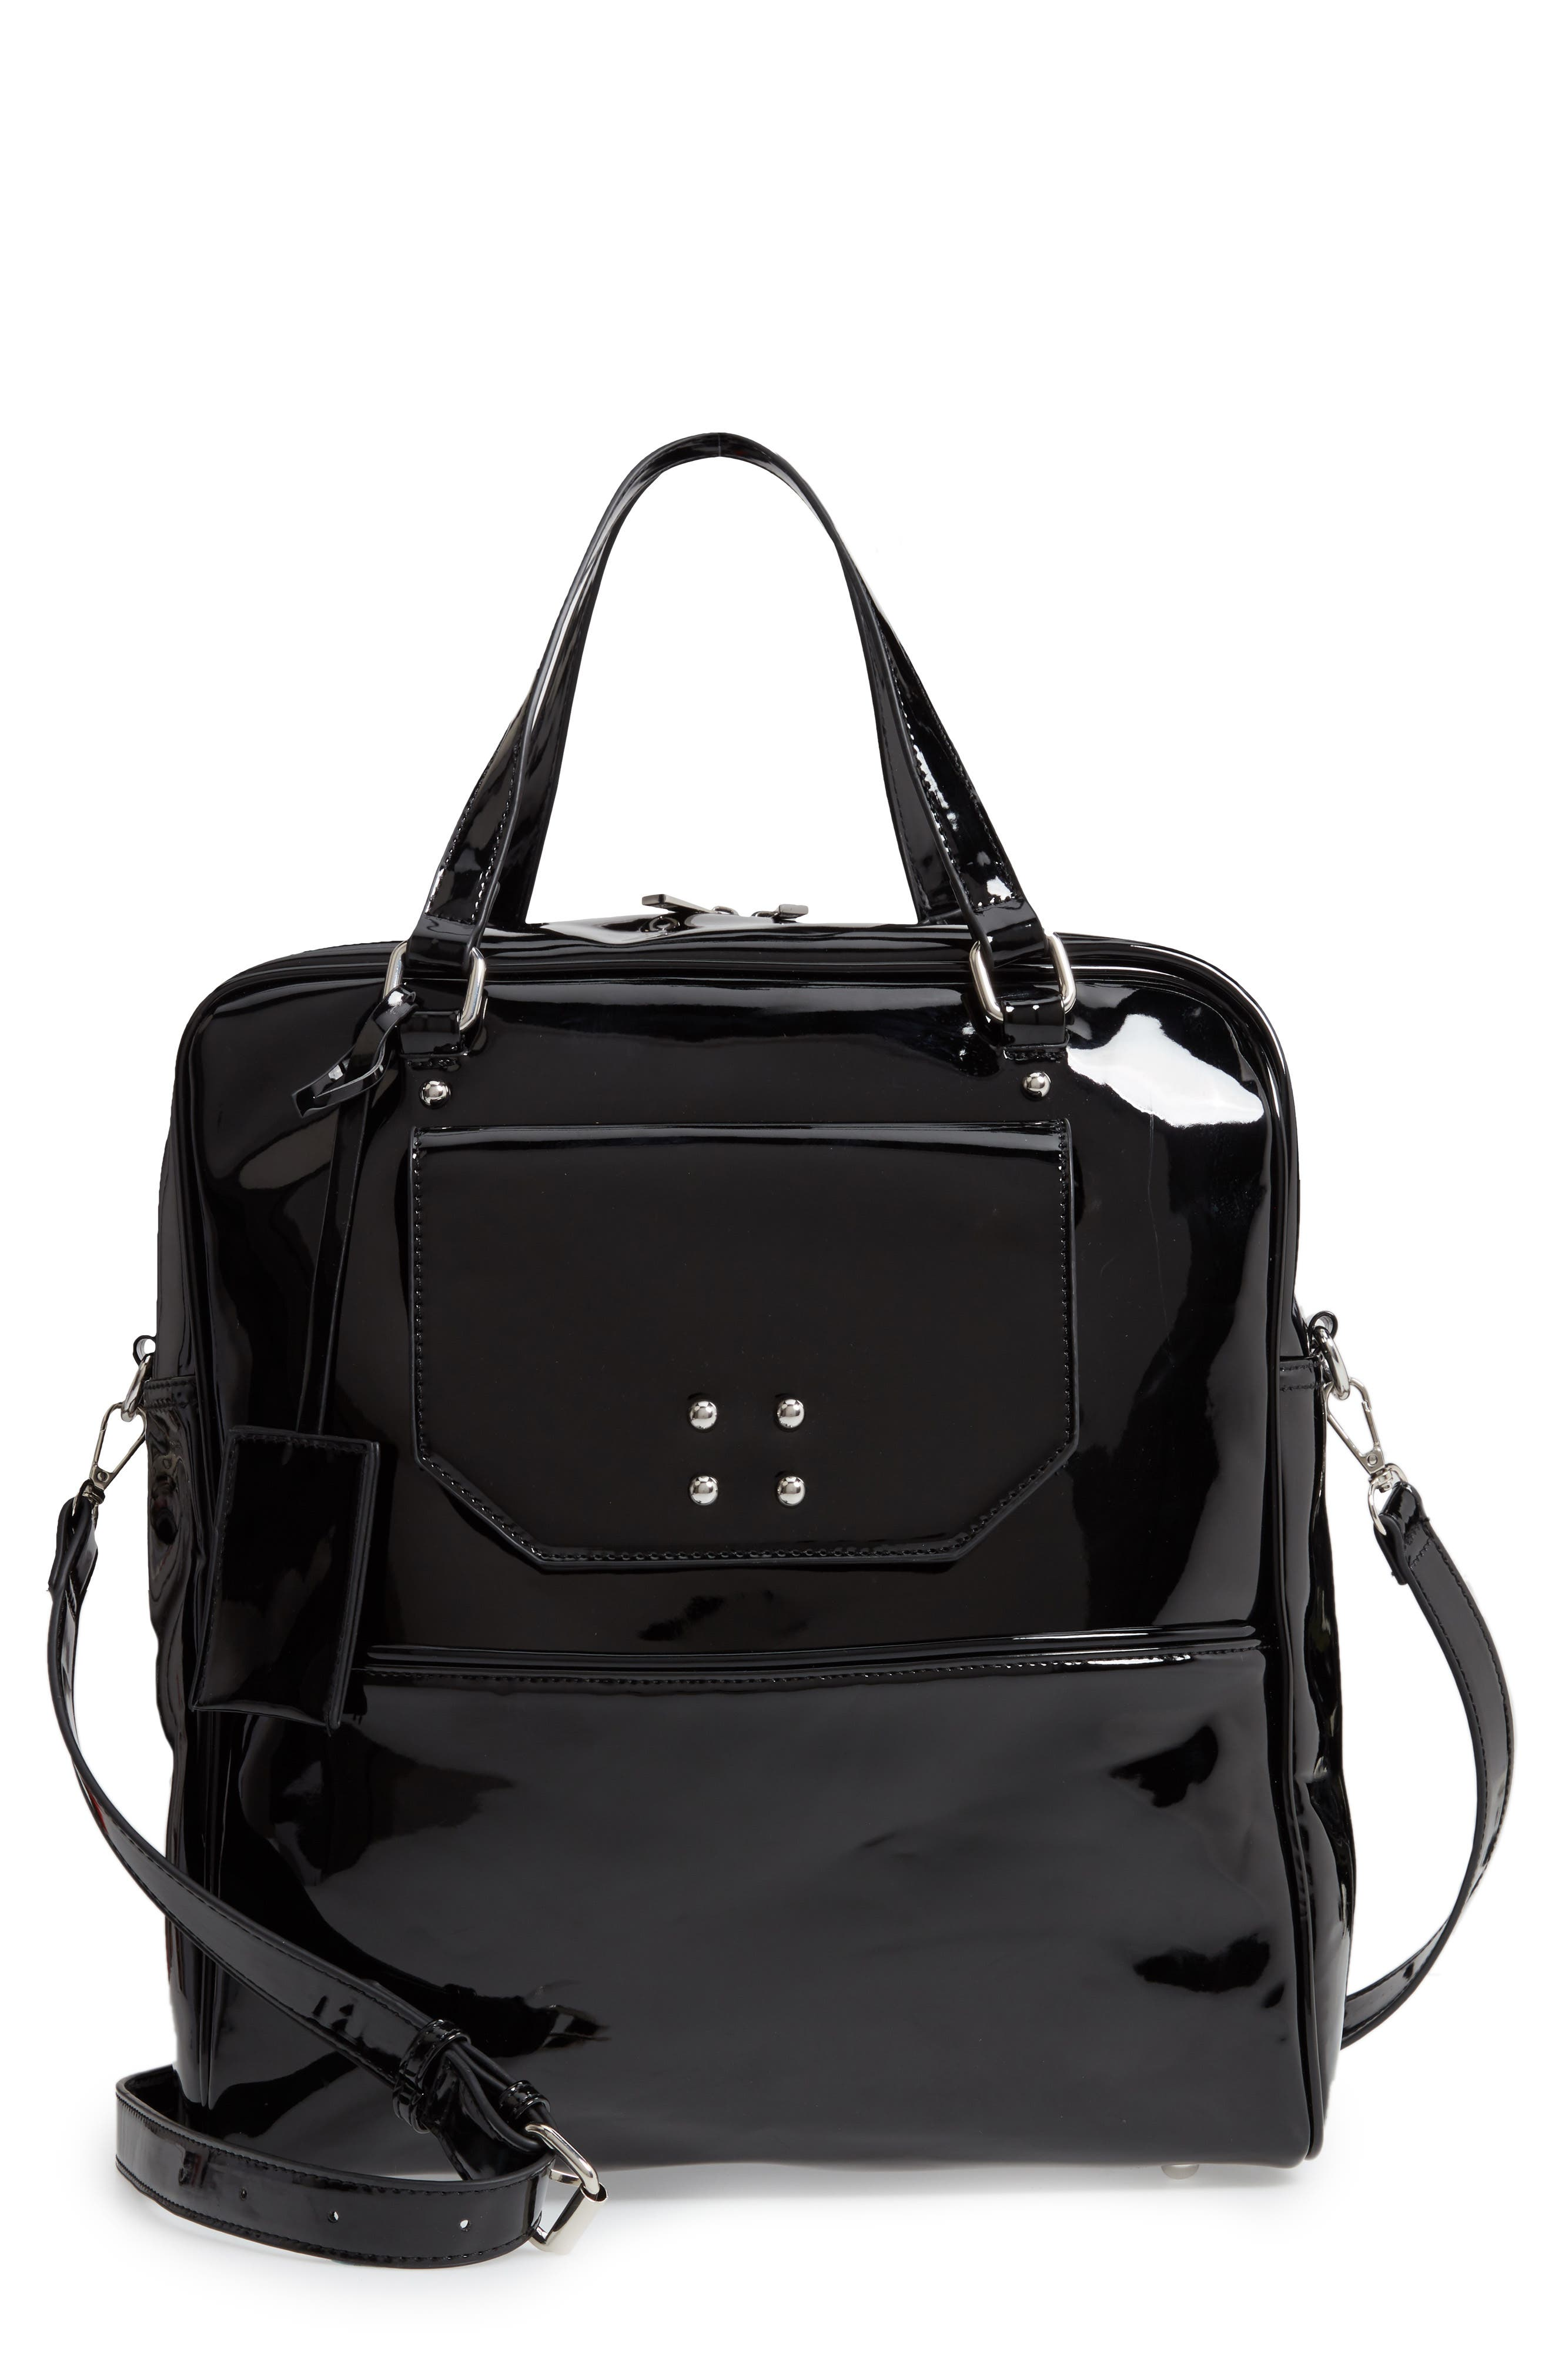 Glossy Faux Leather Structured Tote Bag,                             Main thumbnail 1, color,                             BLACK